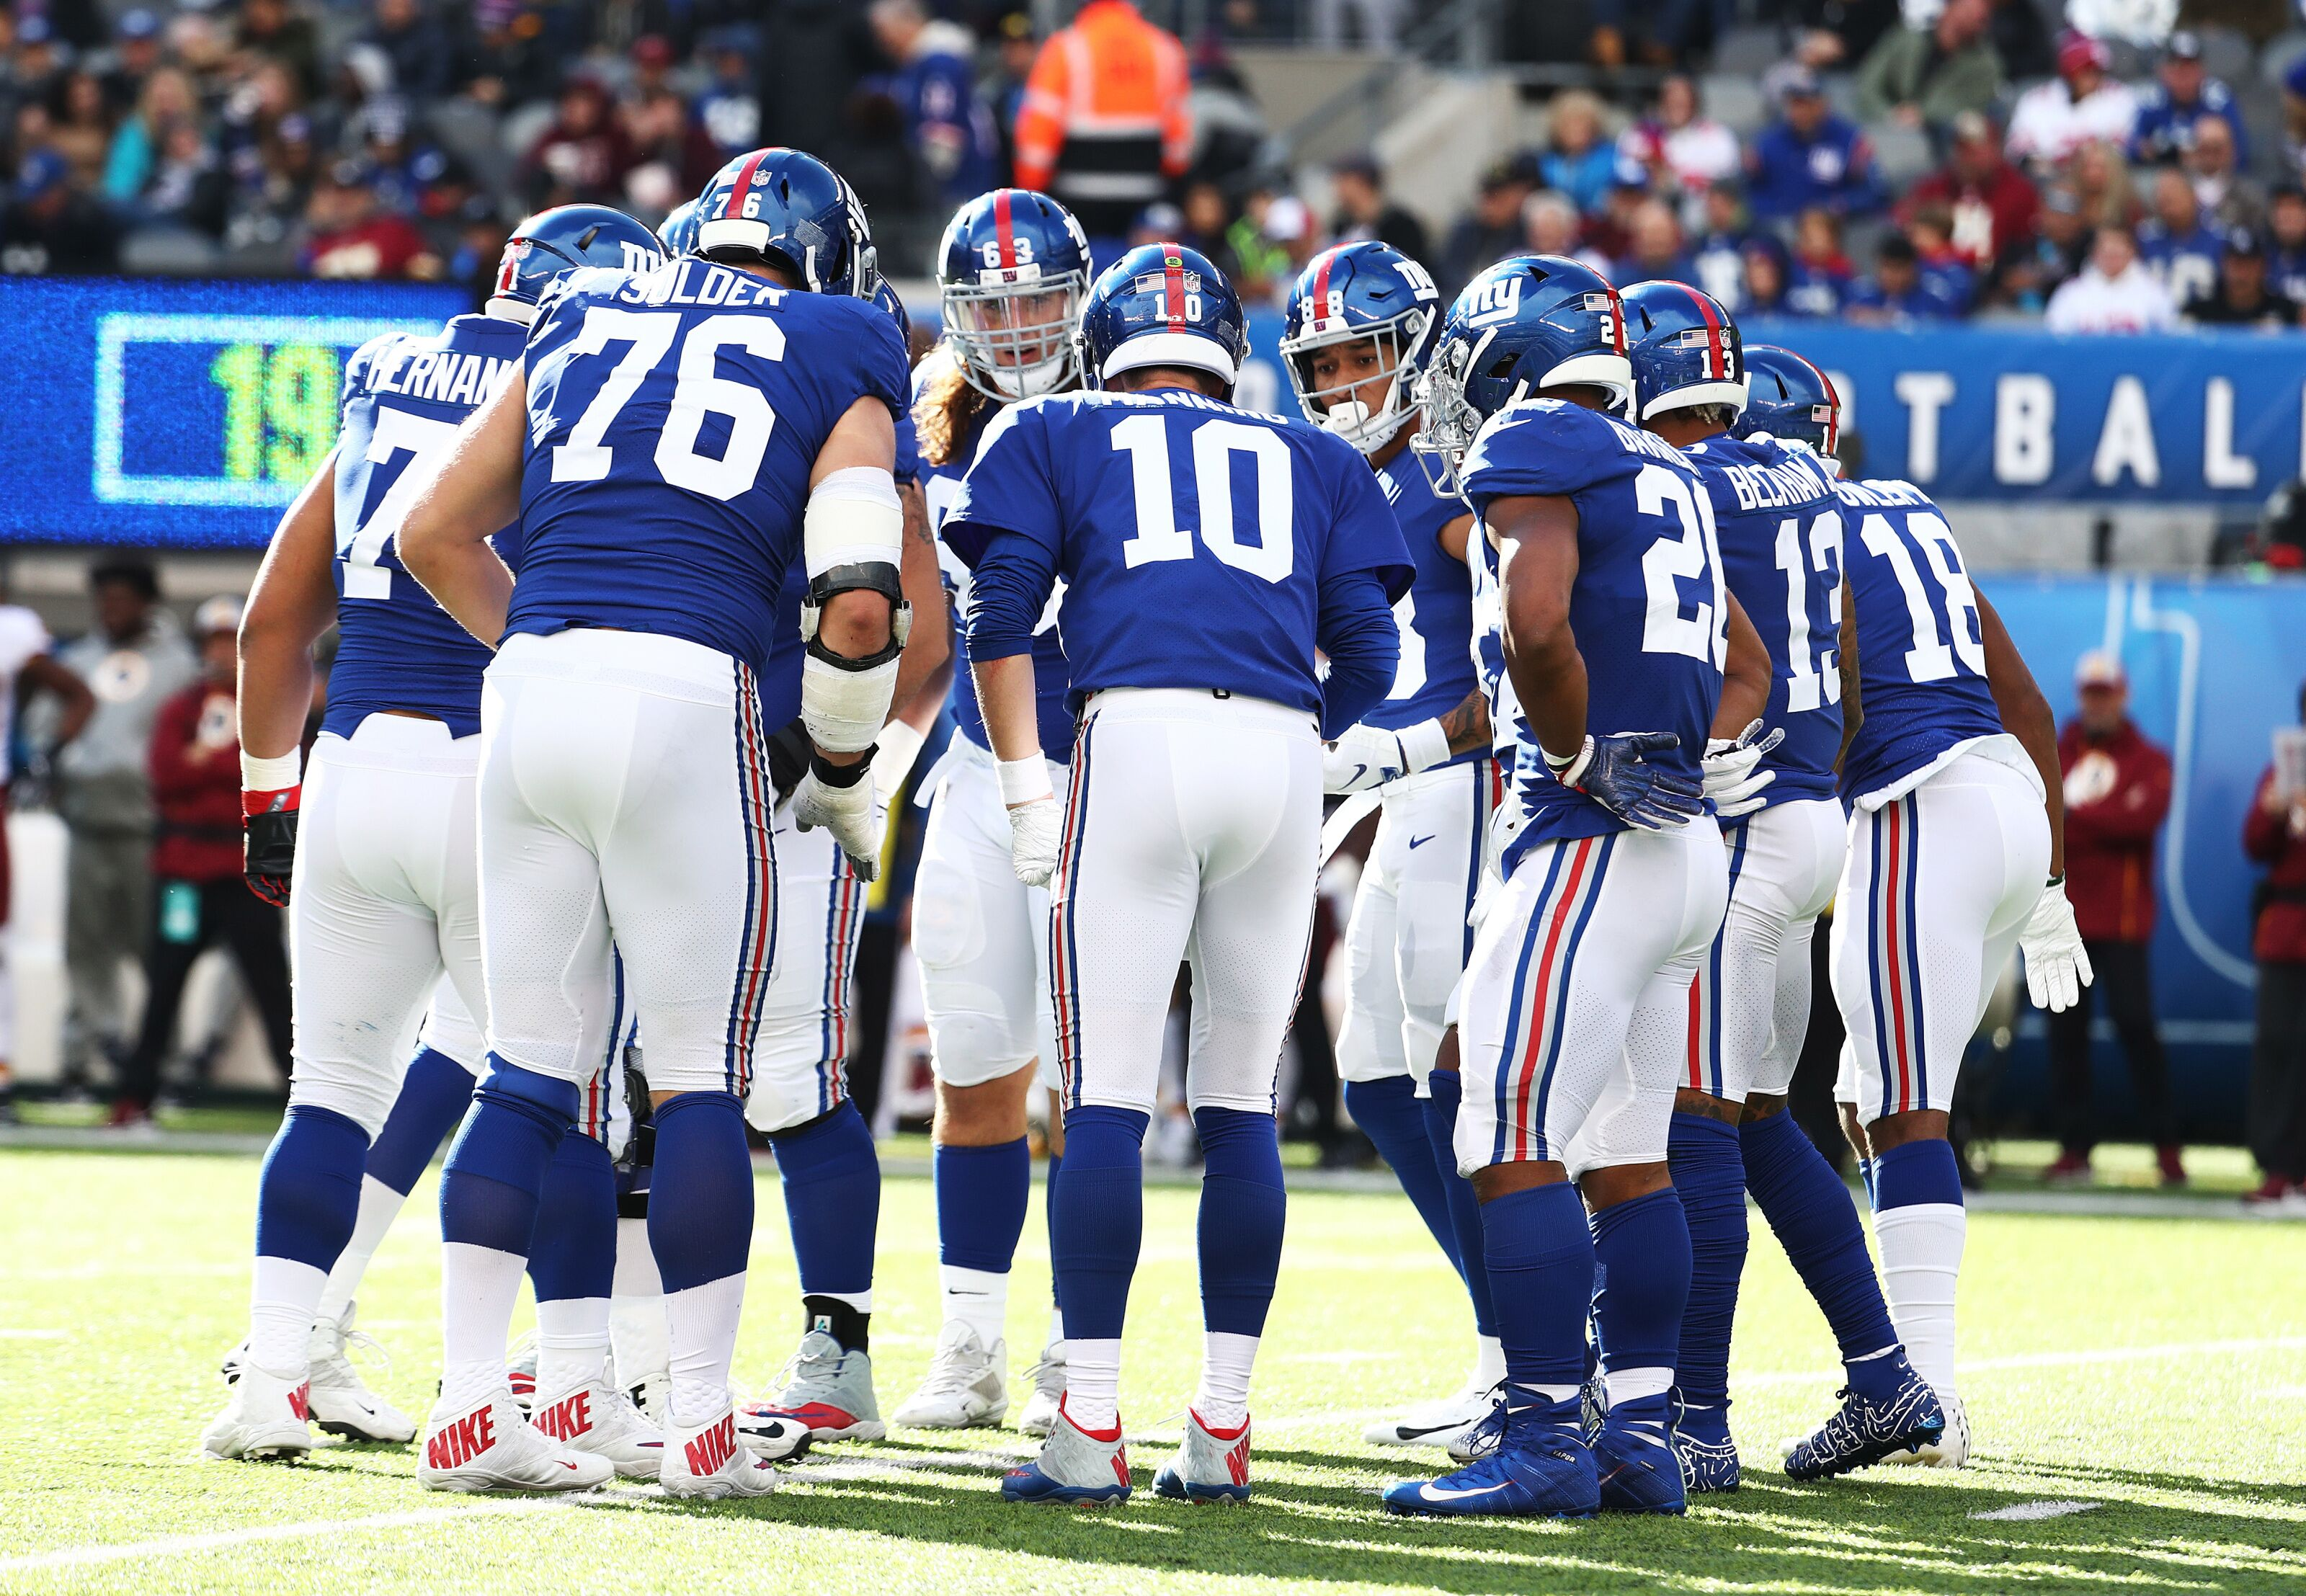 New York Giants: Giants don't need to beat 49ers, just play better than the Jets